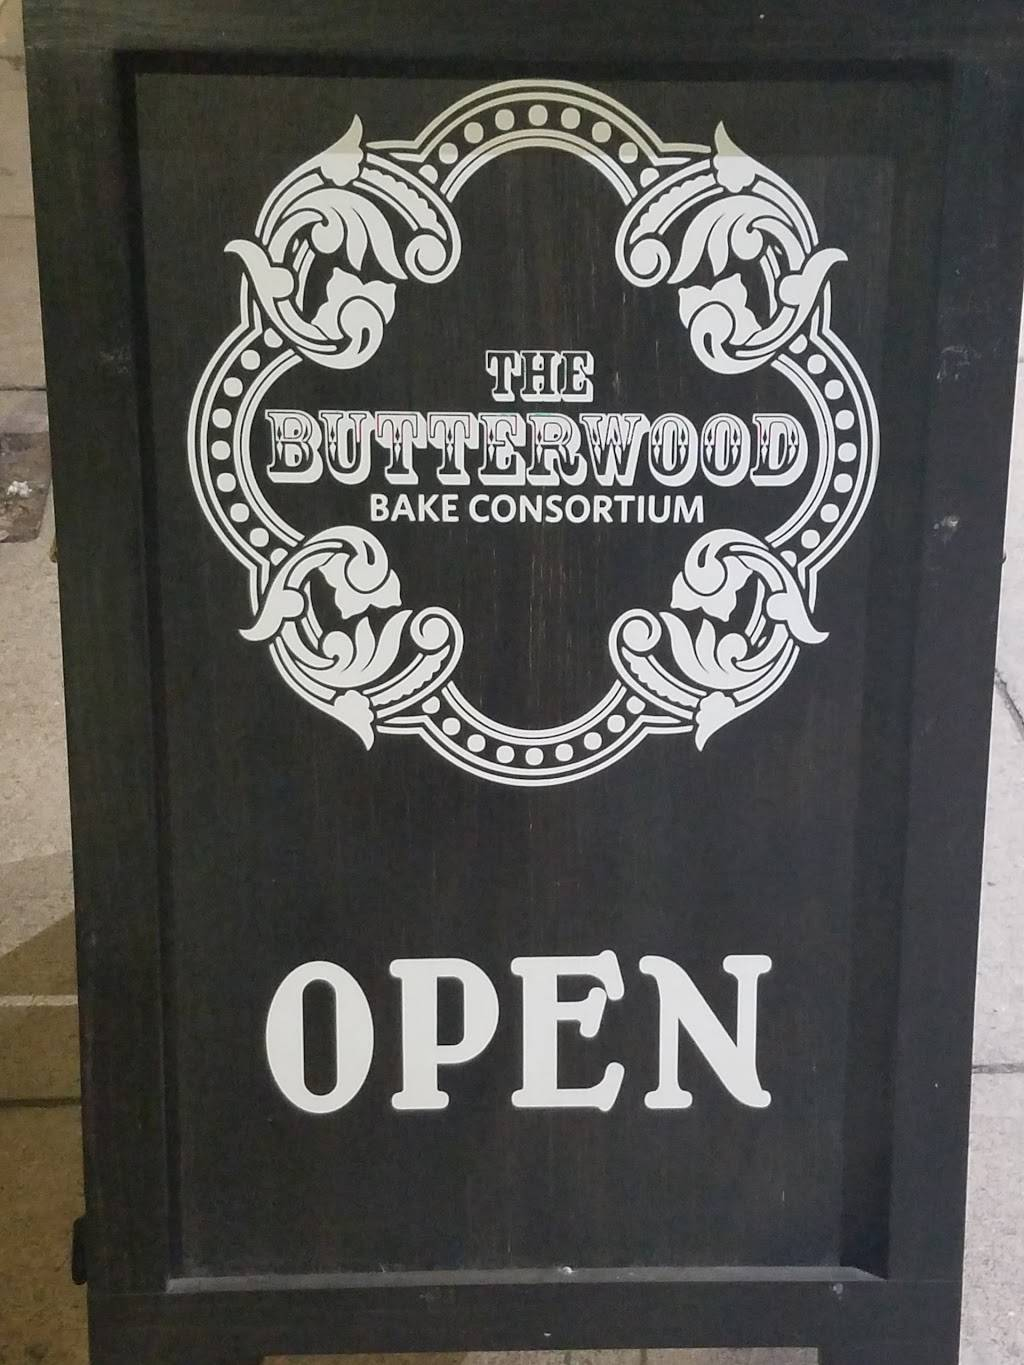 The Butterwood Bake Consortium - cafe    Photo 6 of 9   Address: 5222 Butler St, Pittsburgh, PA 15201, USA   Phone: (412) 781-0218